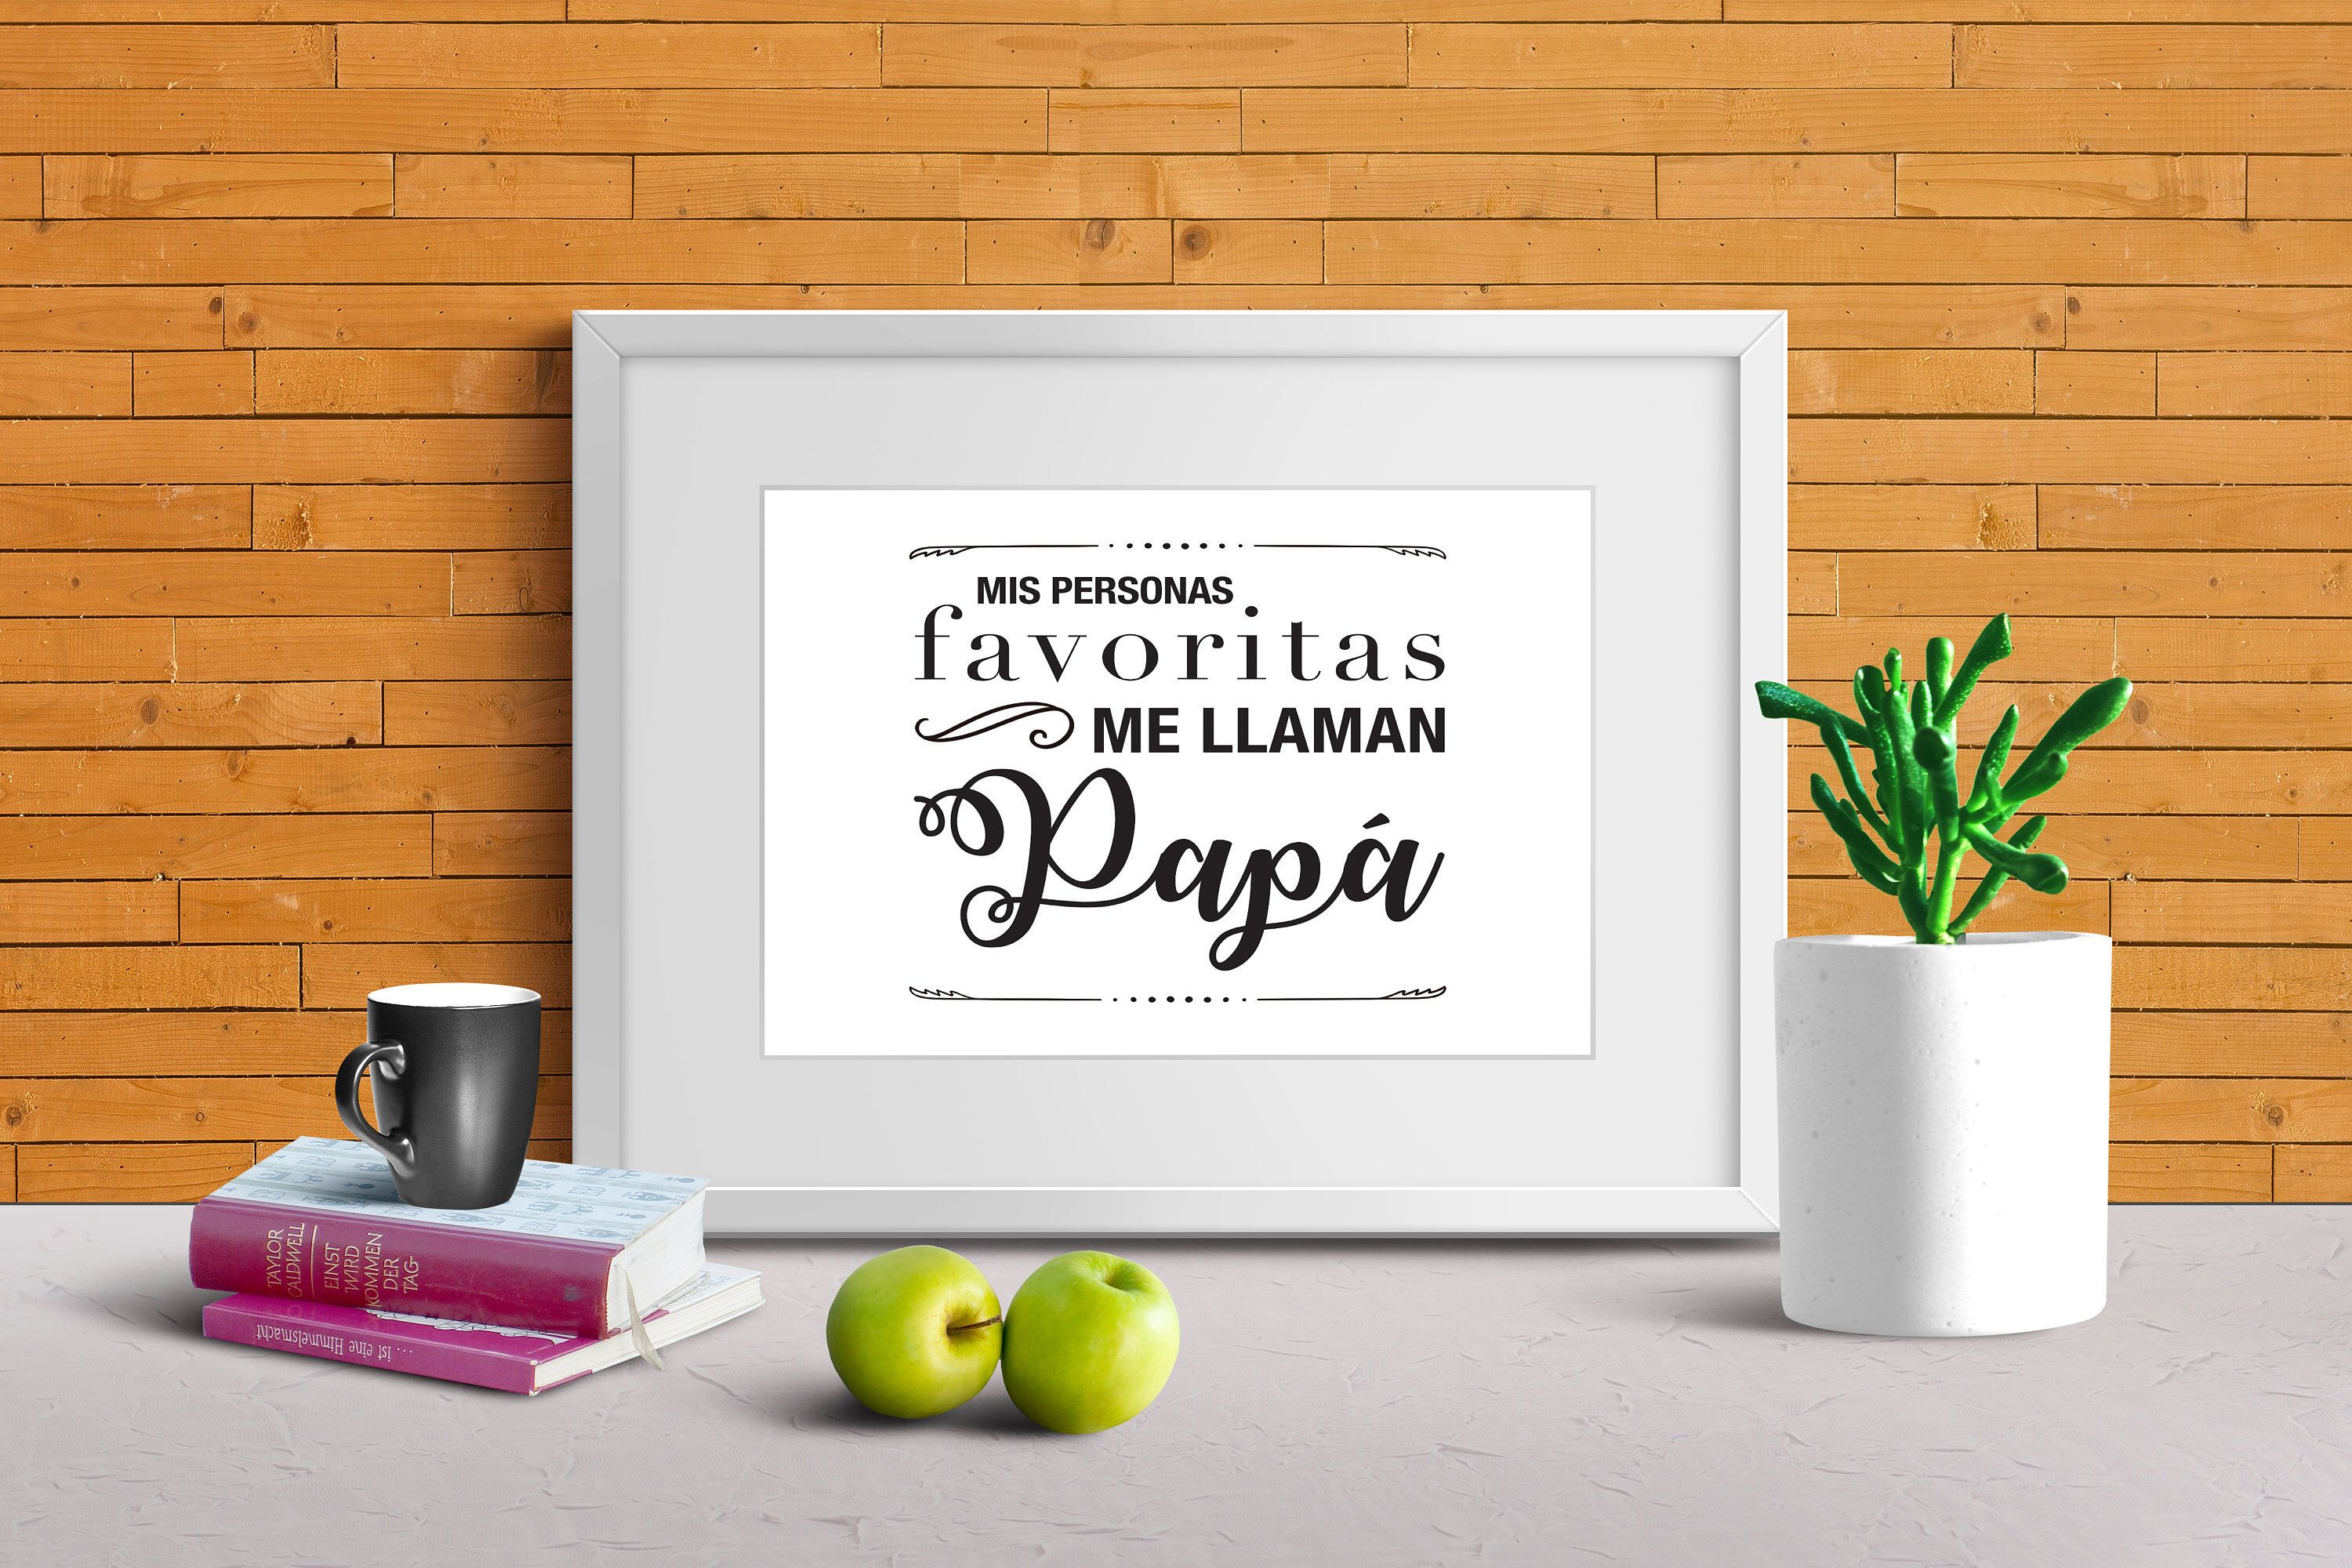 Fathers day gift, Spanish sign, Dia del padre, regalo, Instant Printable download, Mis personas favoritas me llaman papa, 8×10